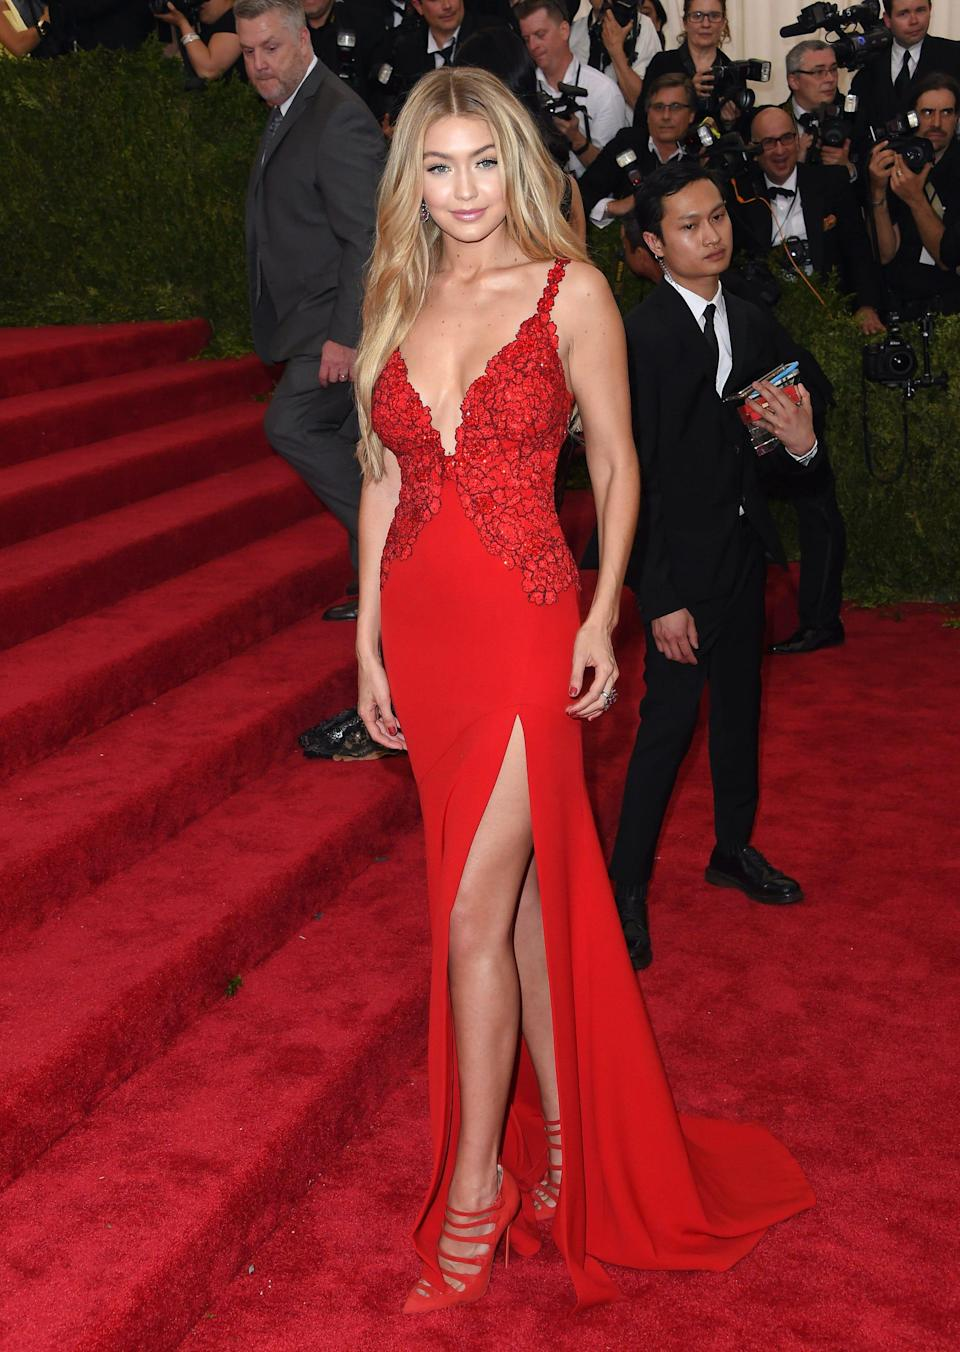 Gigi Hadid wears a red dress with a slit on a red carpet.